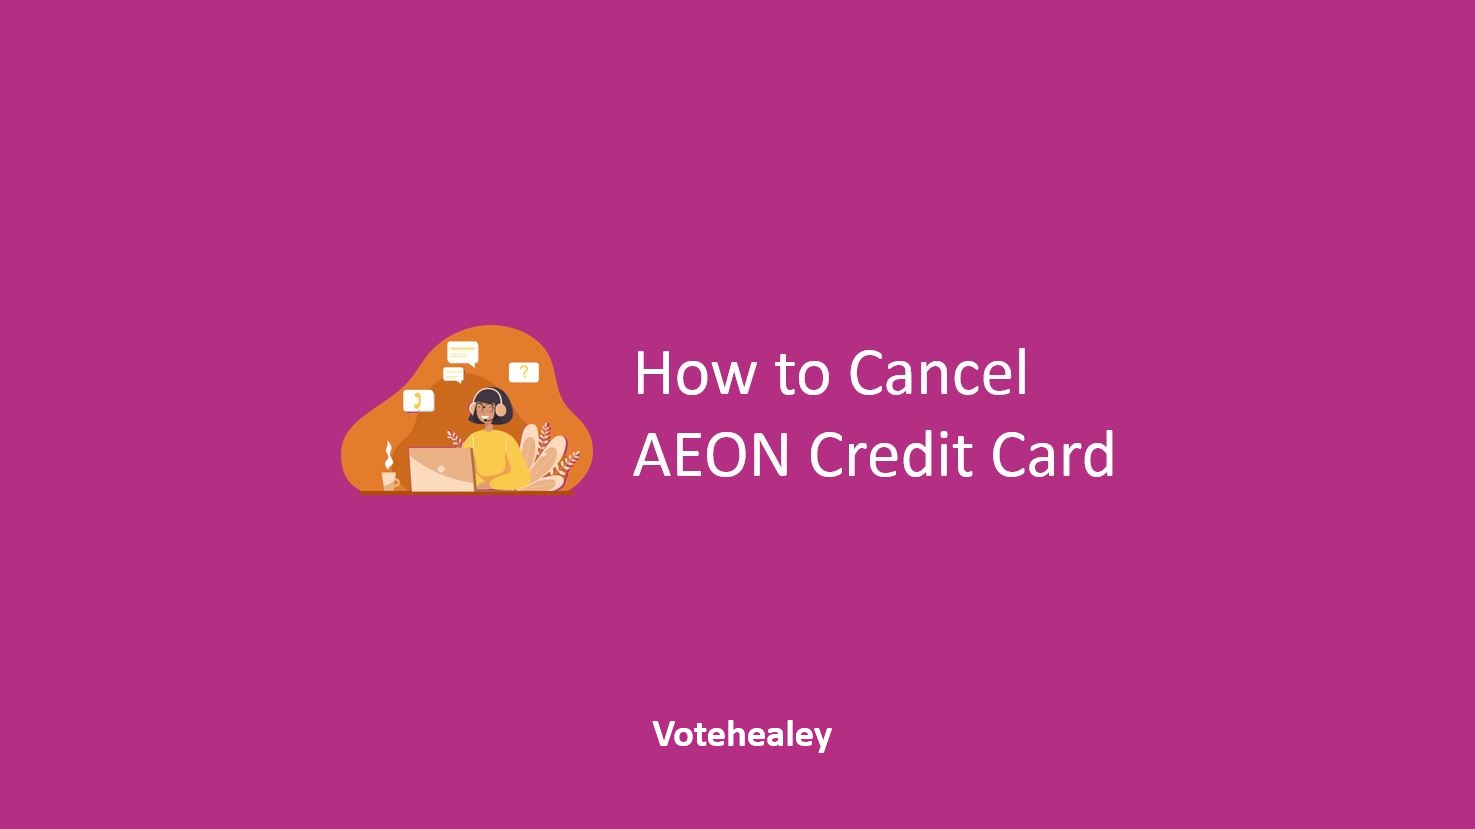 How to Cancel AEON Credit Card